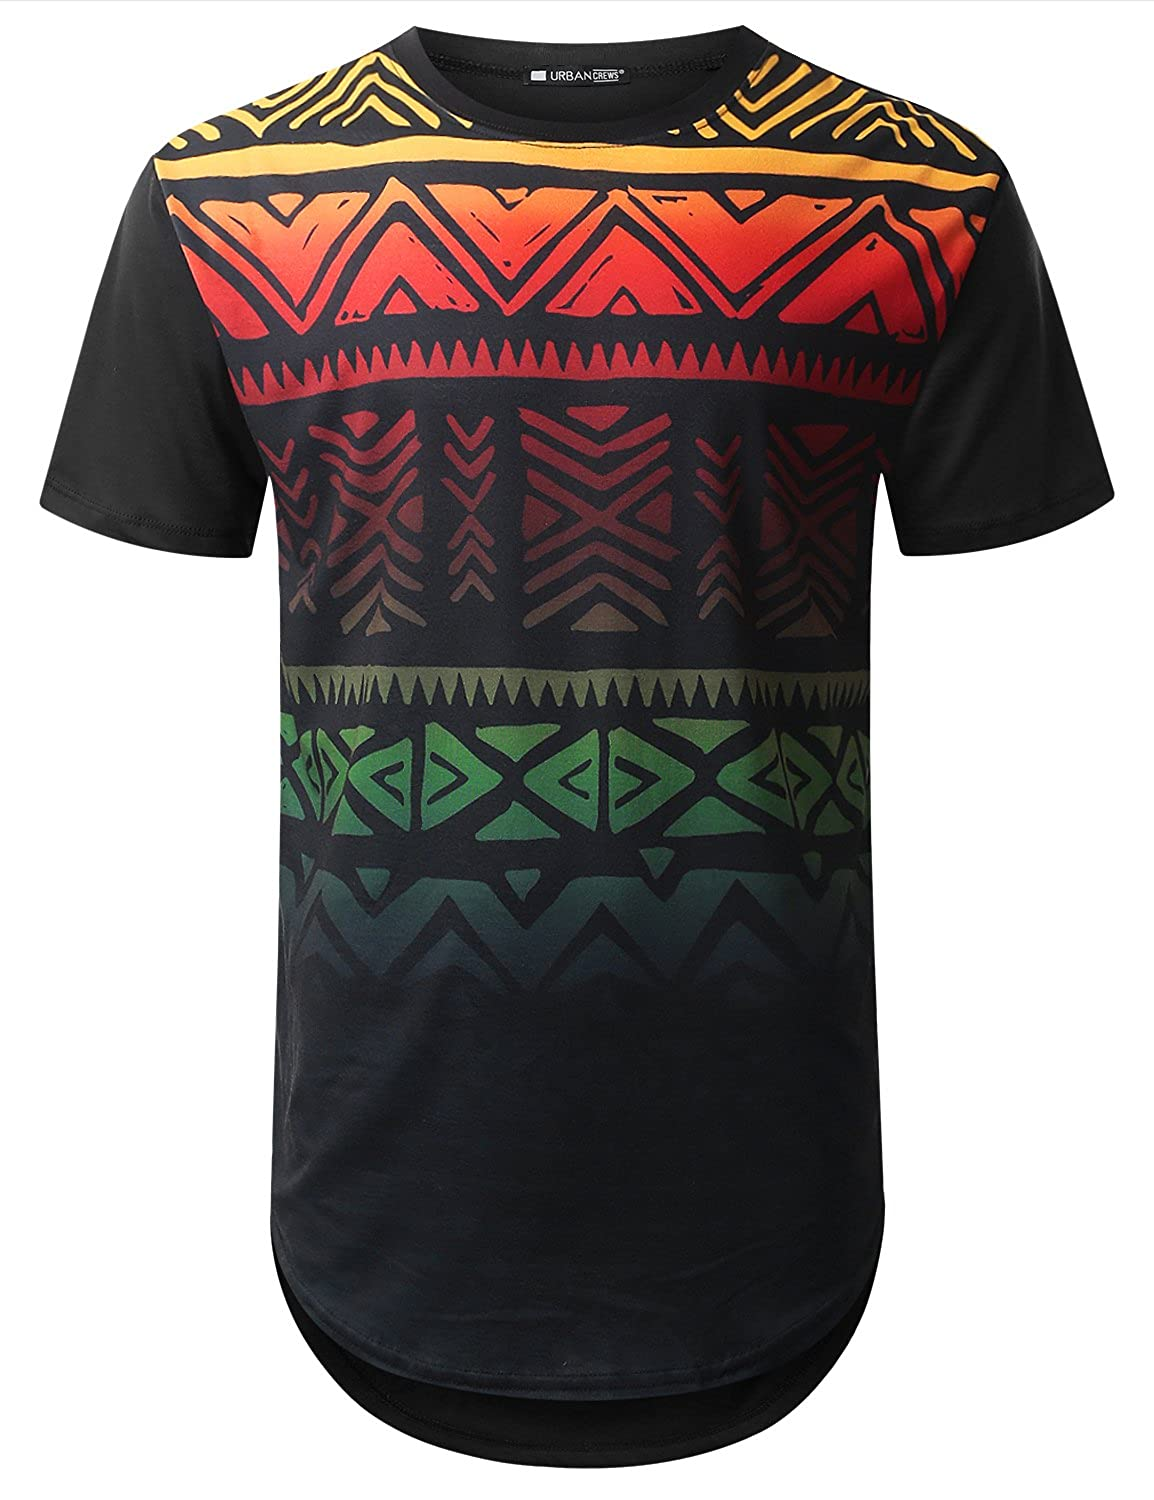 8be26d4f3 *Please Check the Materials On The Size Chart Image* Machine Wash Cold with  Like Colors Graphic Aztec Print Longline Crewneck T-shirt. Longer Length